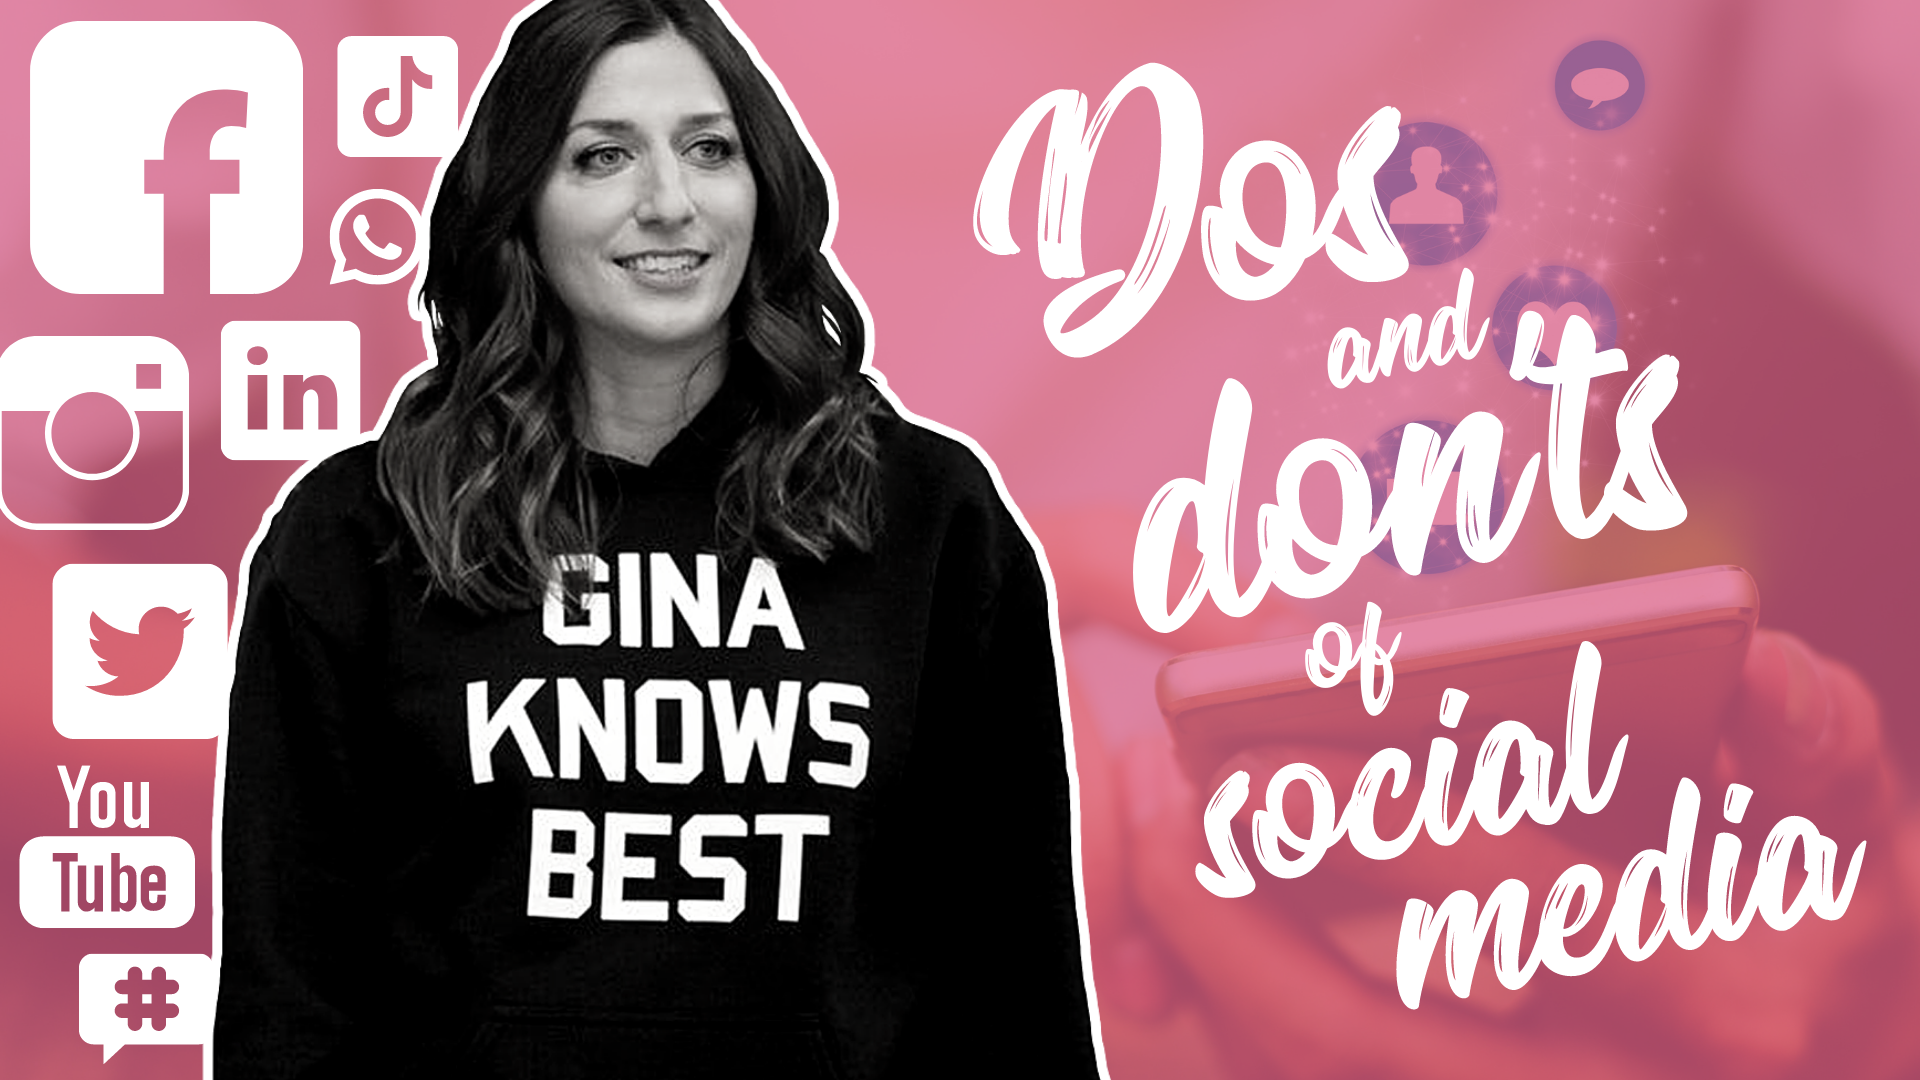 gina knows best for social media marketing